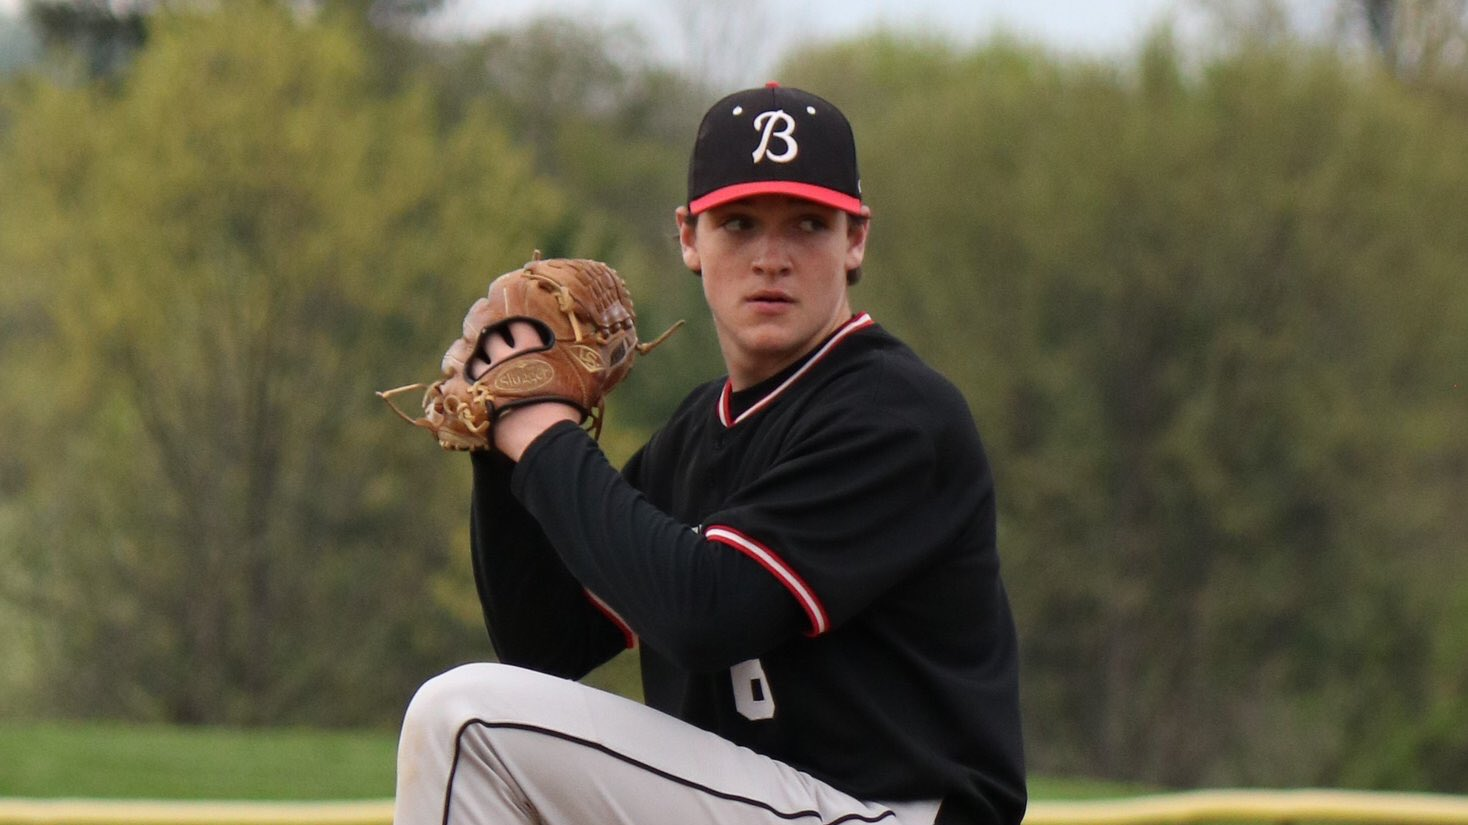 Boyertown Baseball's pitcher Trey Yesavage, sophomore, threw a complete game no-hitter with 8 strikeouts on May 2nd, as the Bears defeated Phoenixville 2-0.